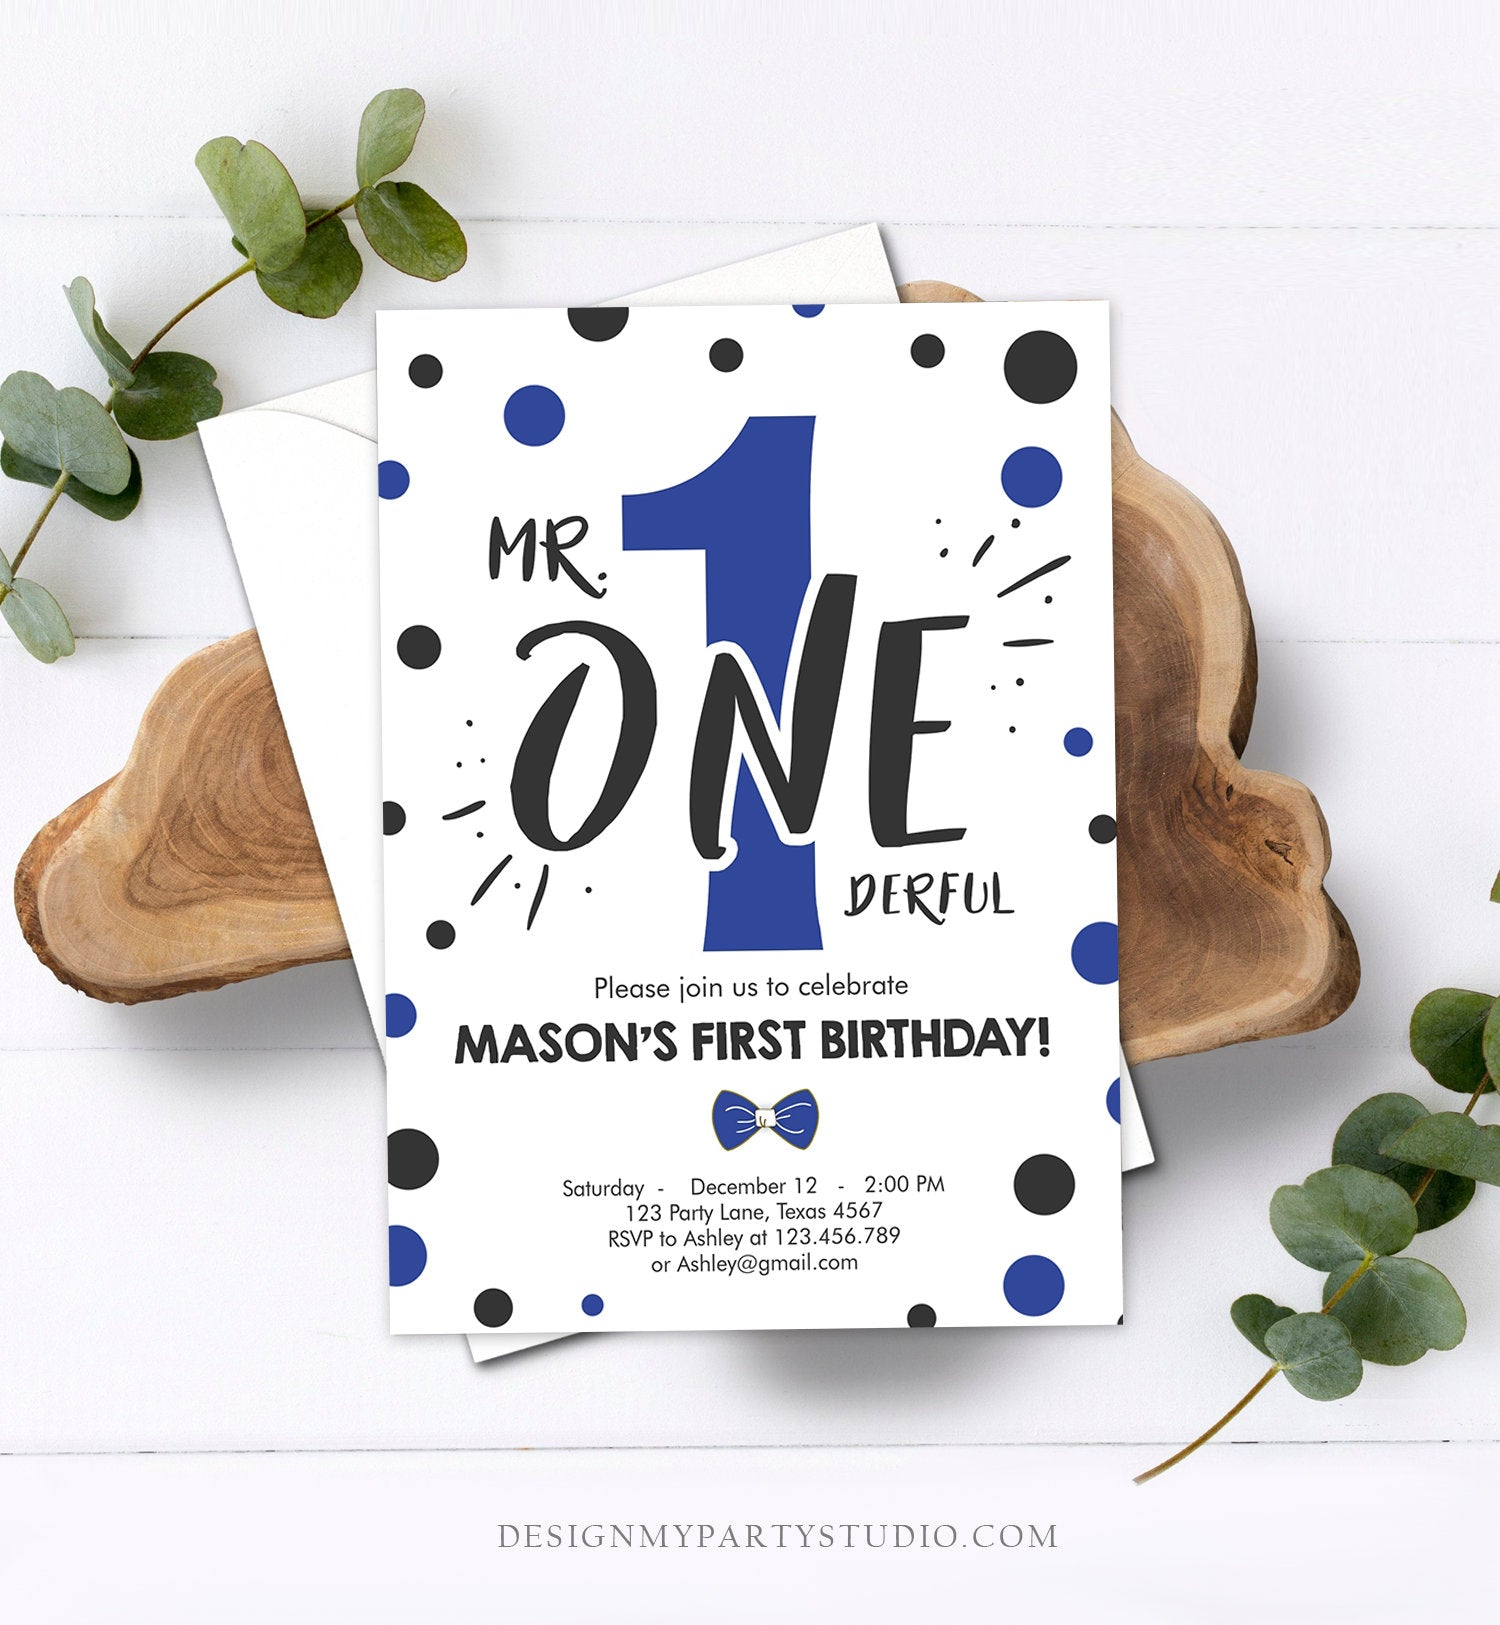 Editable Mr Onederful Birthday Invitation Black Royal Blue Boy Bow Tie Confetti 1st Navy Blue Download Printable Template Digital Corjl 0072